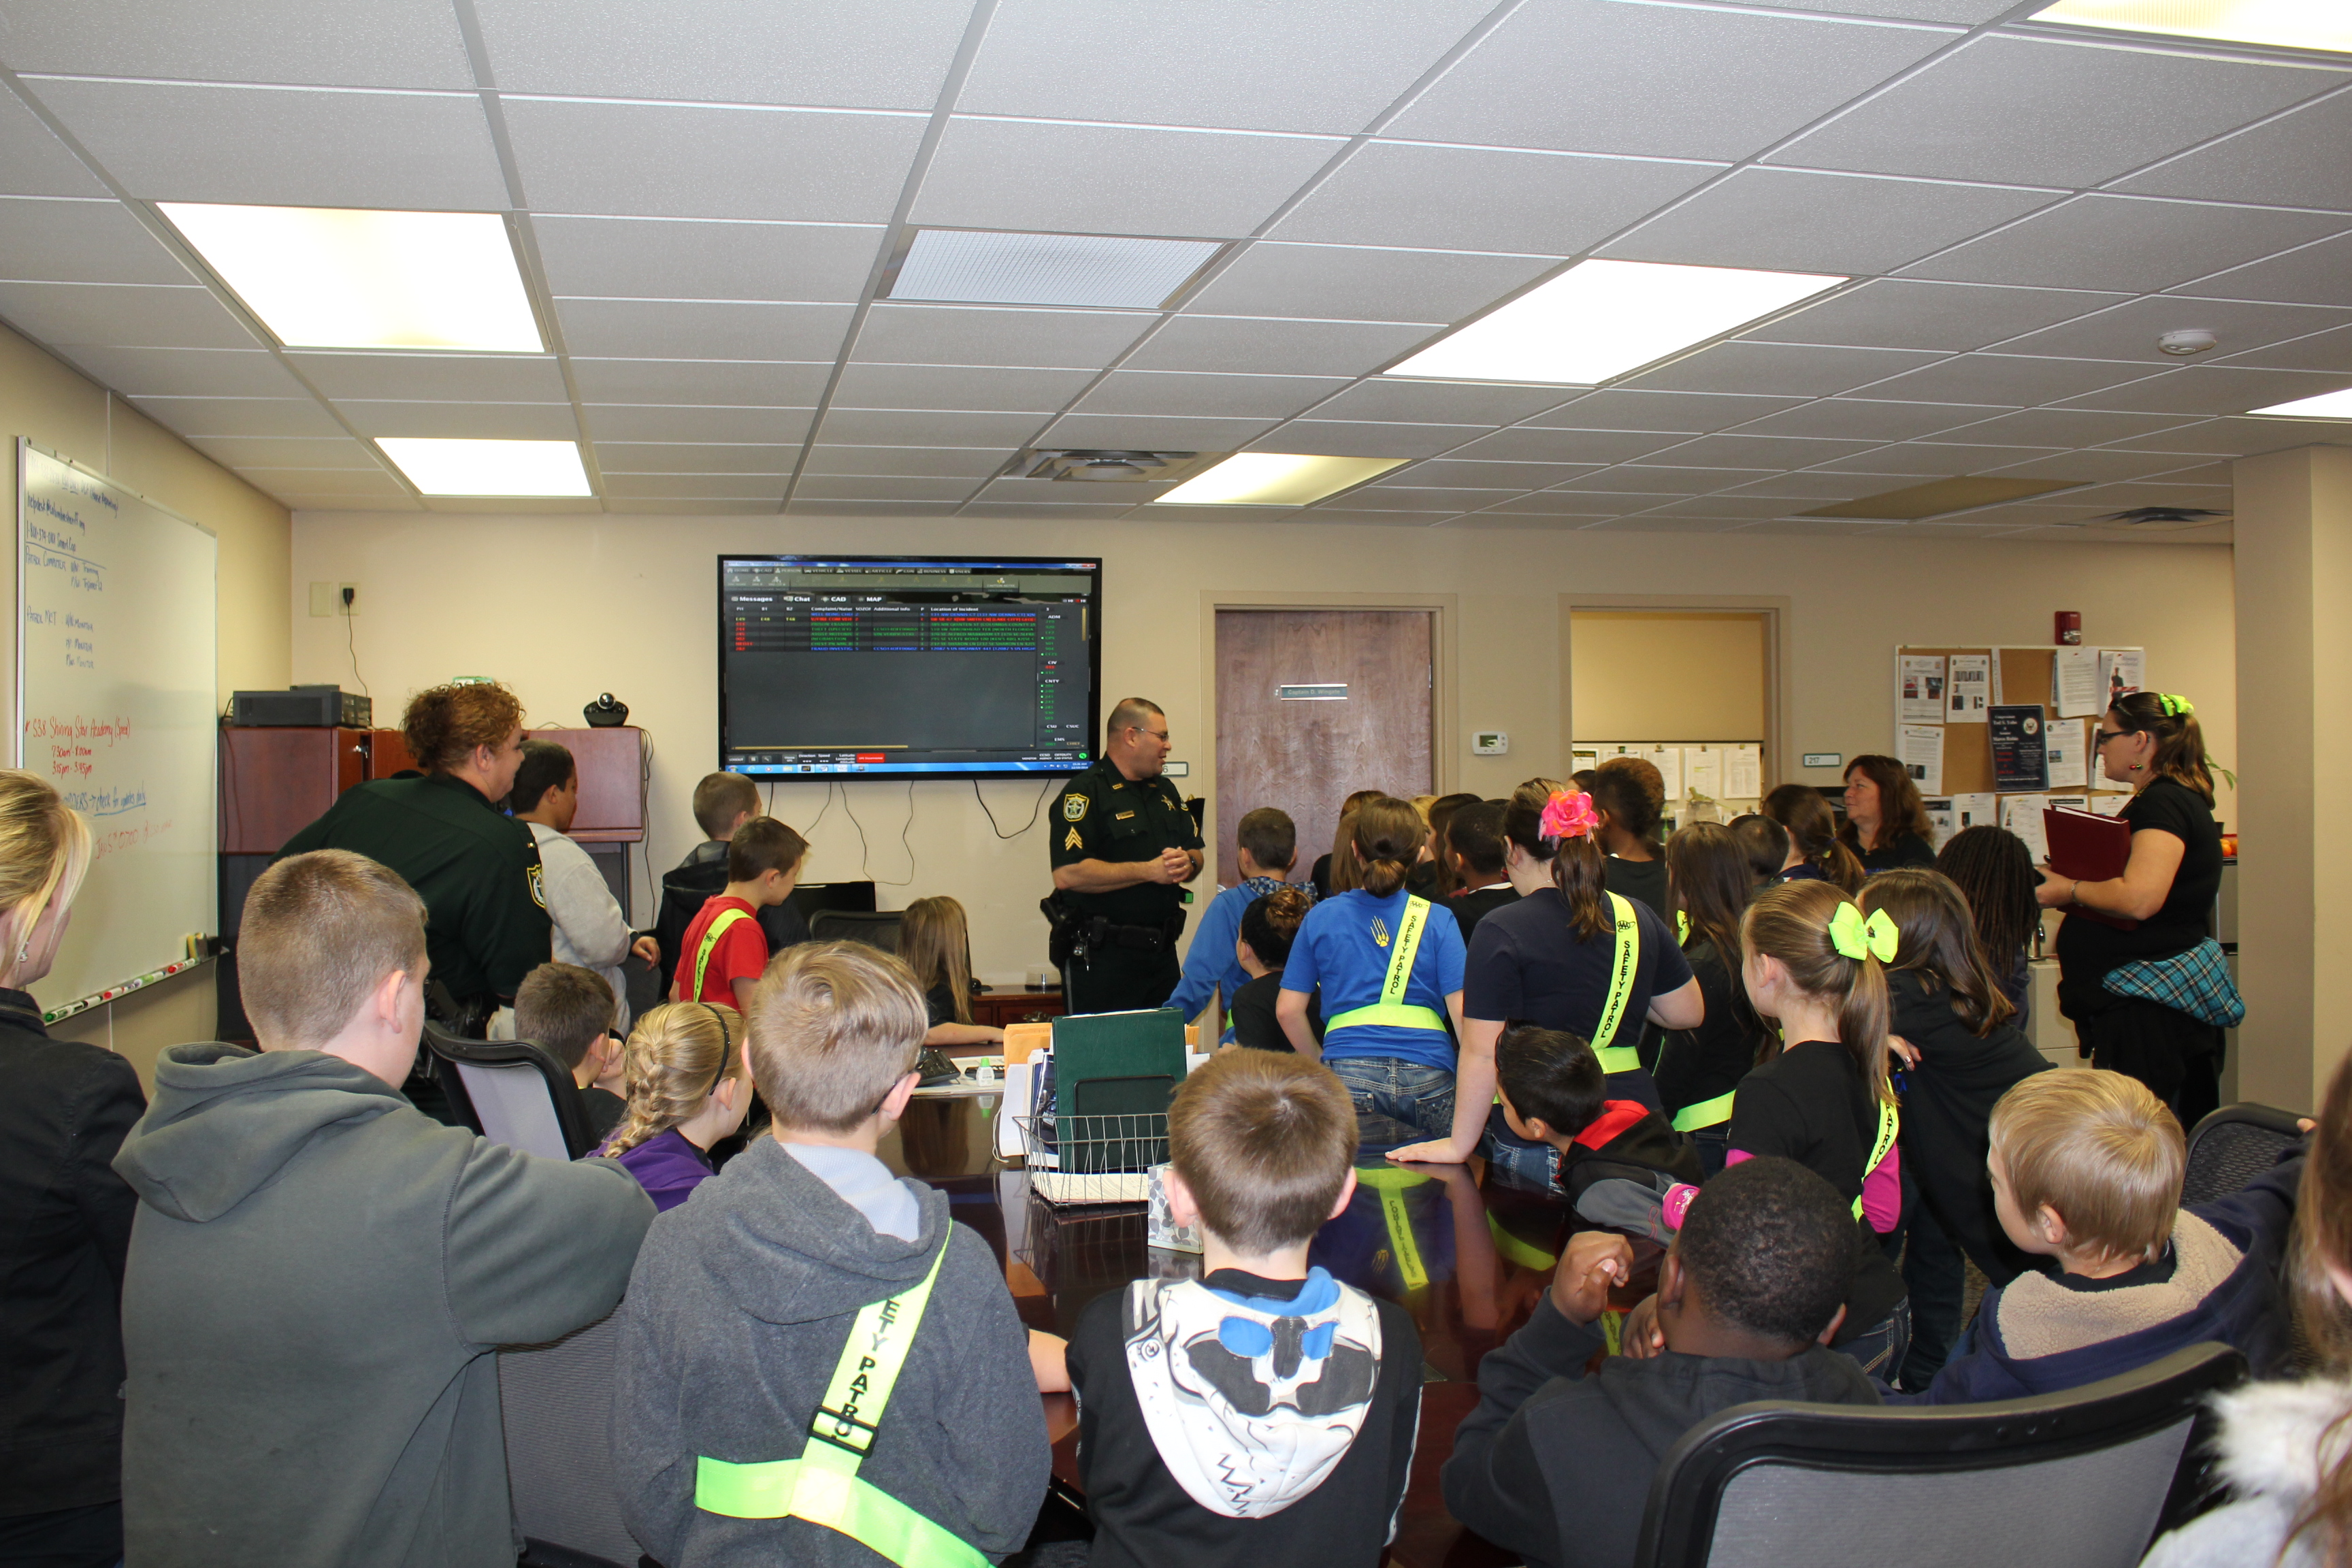 Sergeant Rick Damon briefs the students on patrol operations